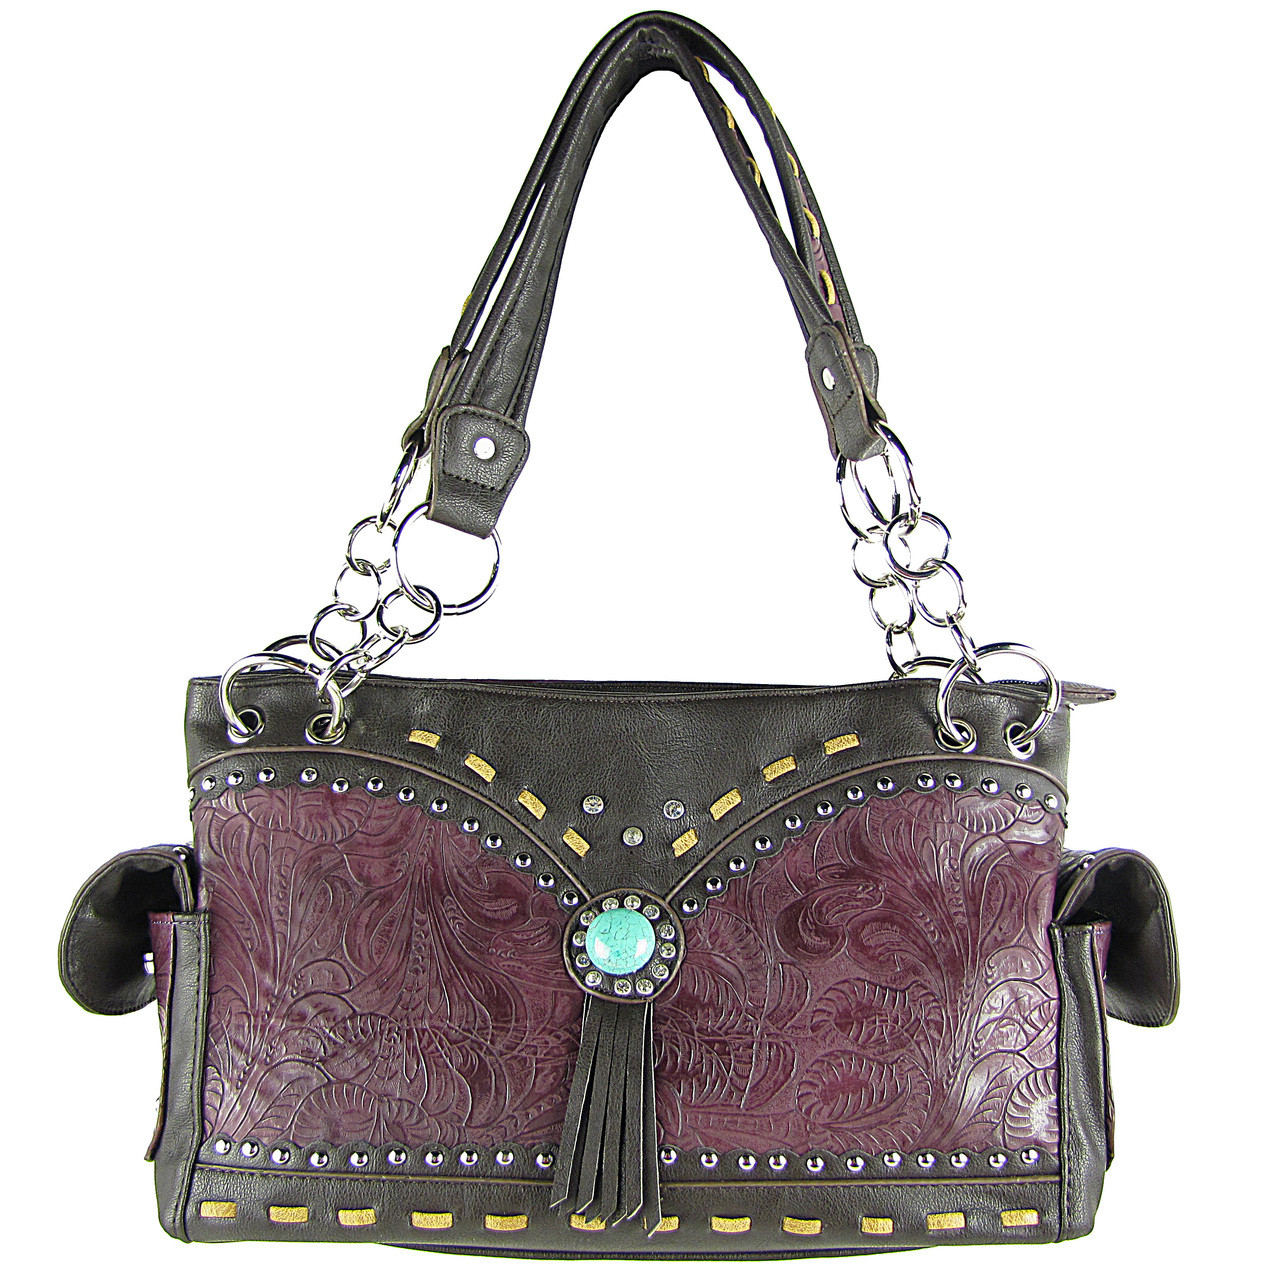 PURPLE WESTERN BLUE STONE TOOLED LOOK SHOULDER HANDBAG HB1-39W53PPL